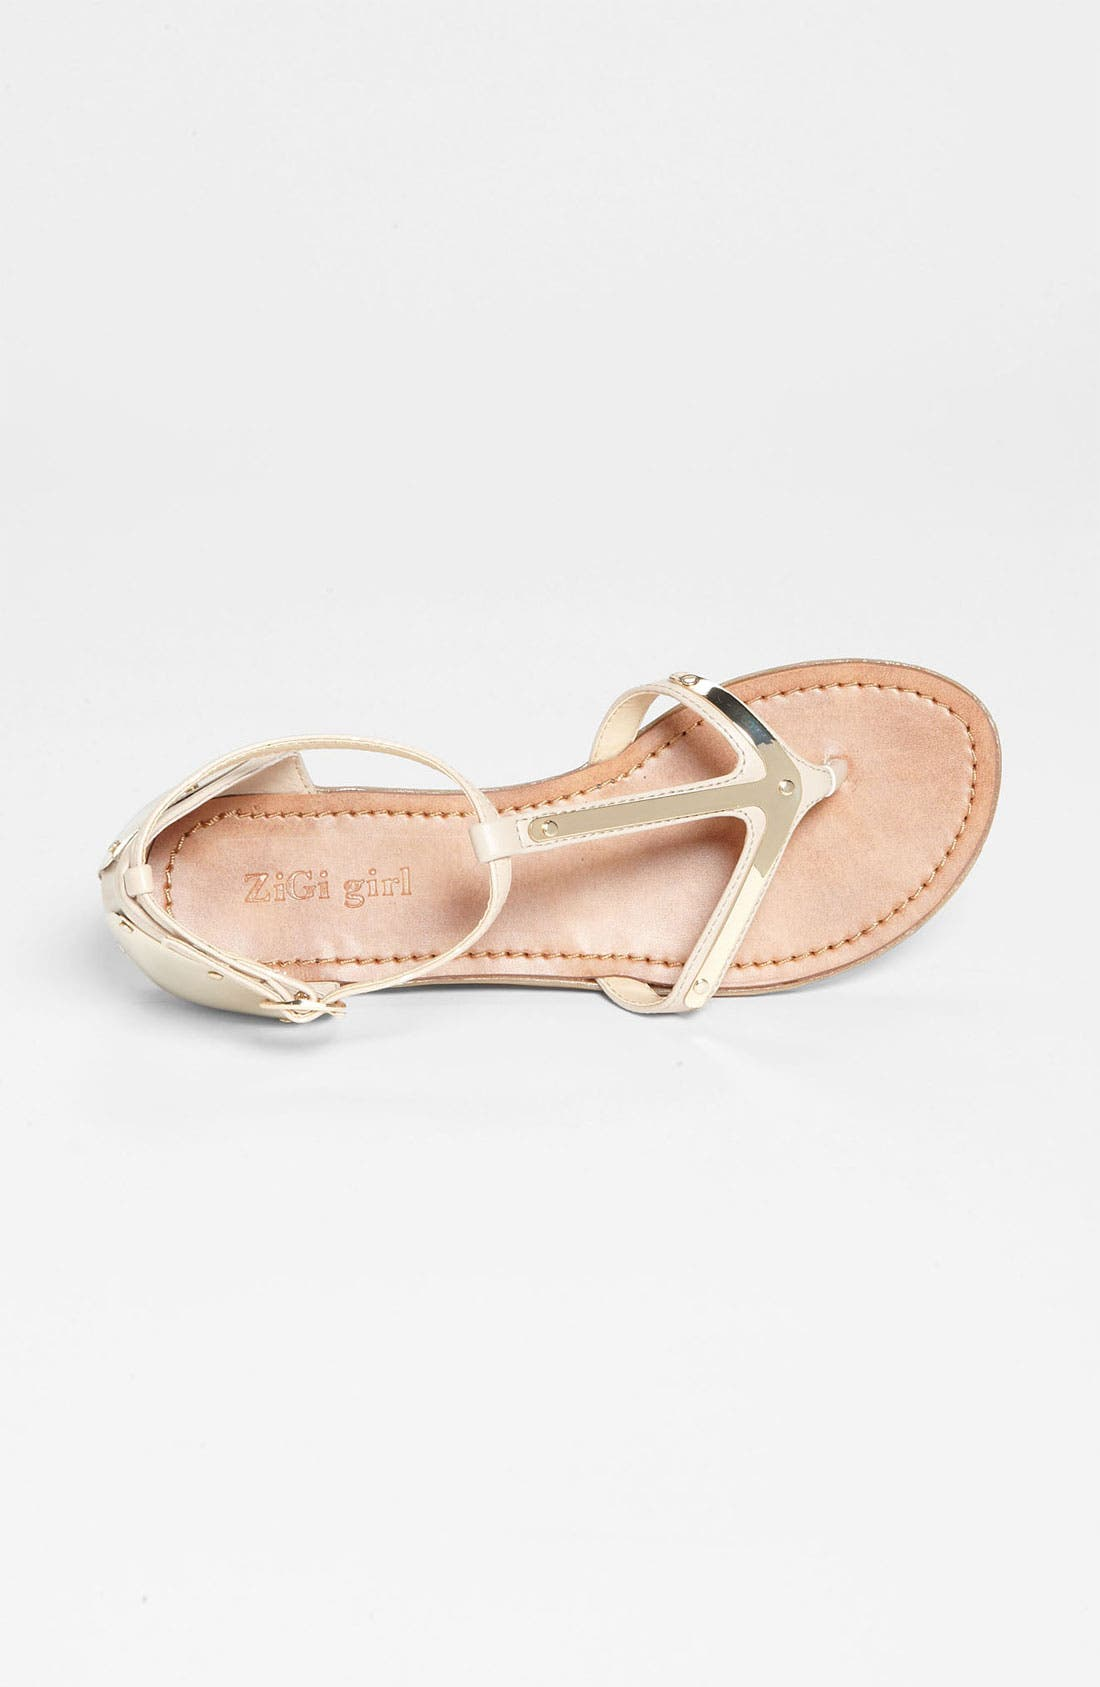 Alternate Image 2  - ZiGi girl 'Arrow' Sandal